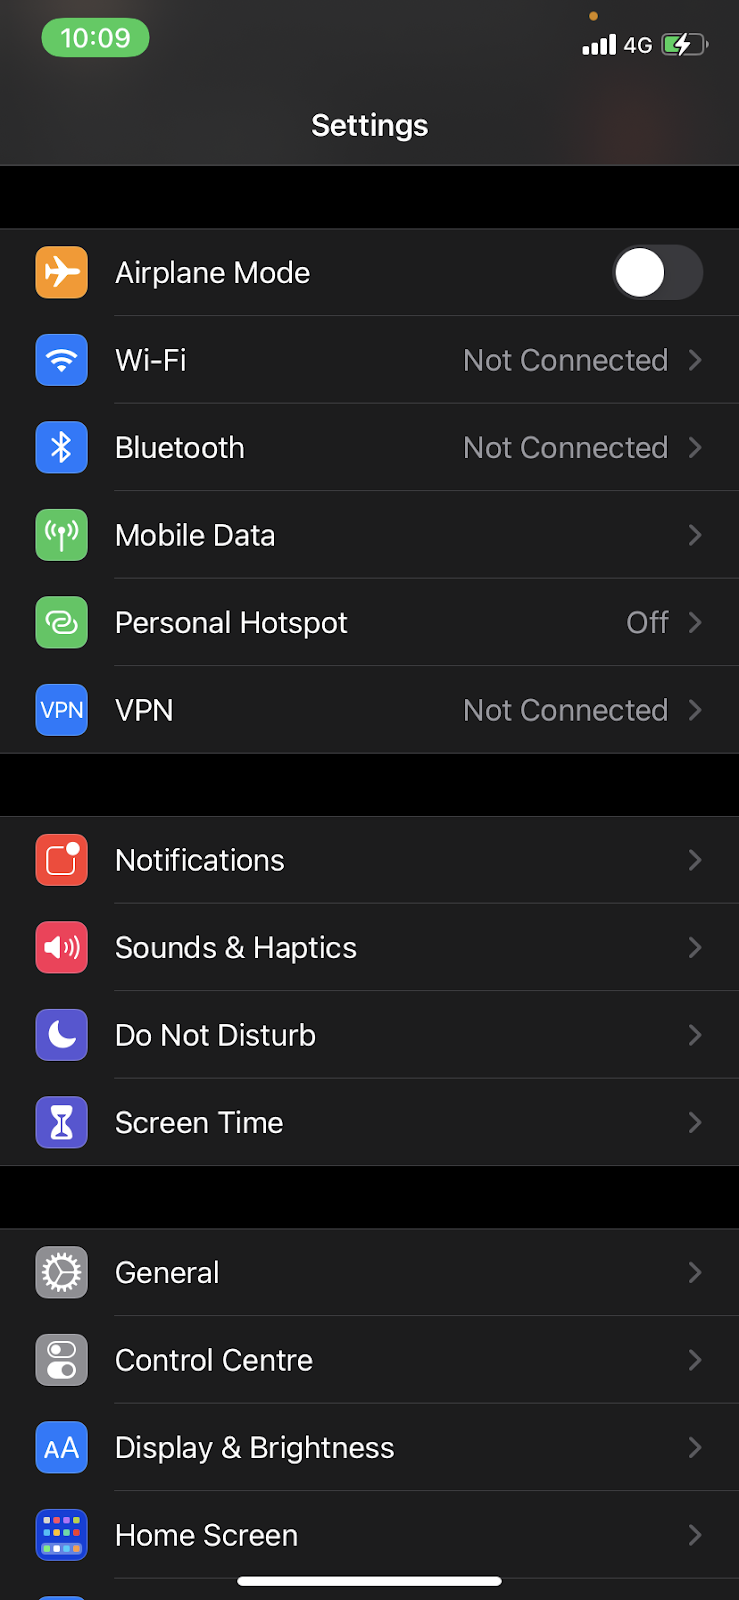 The Screen Time option in Apple Settings